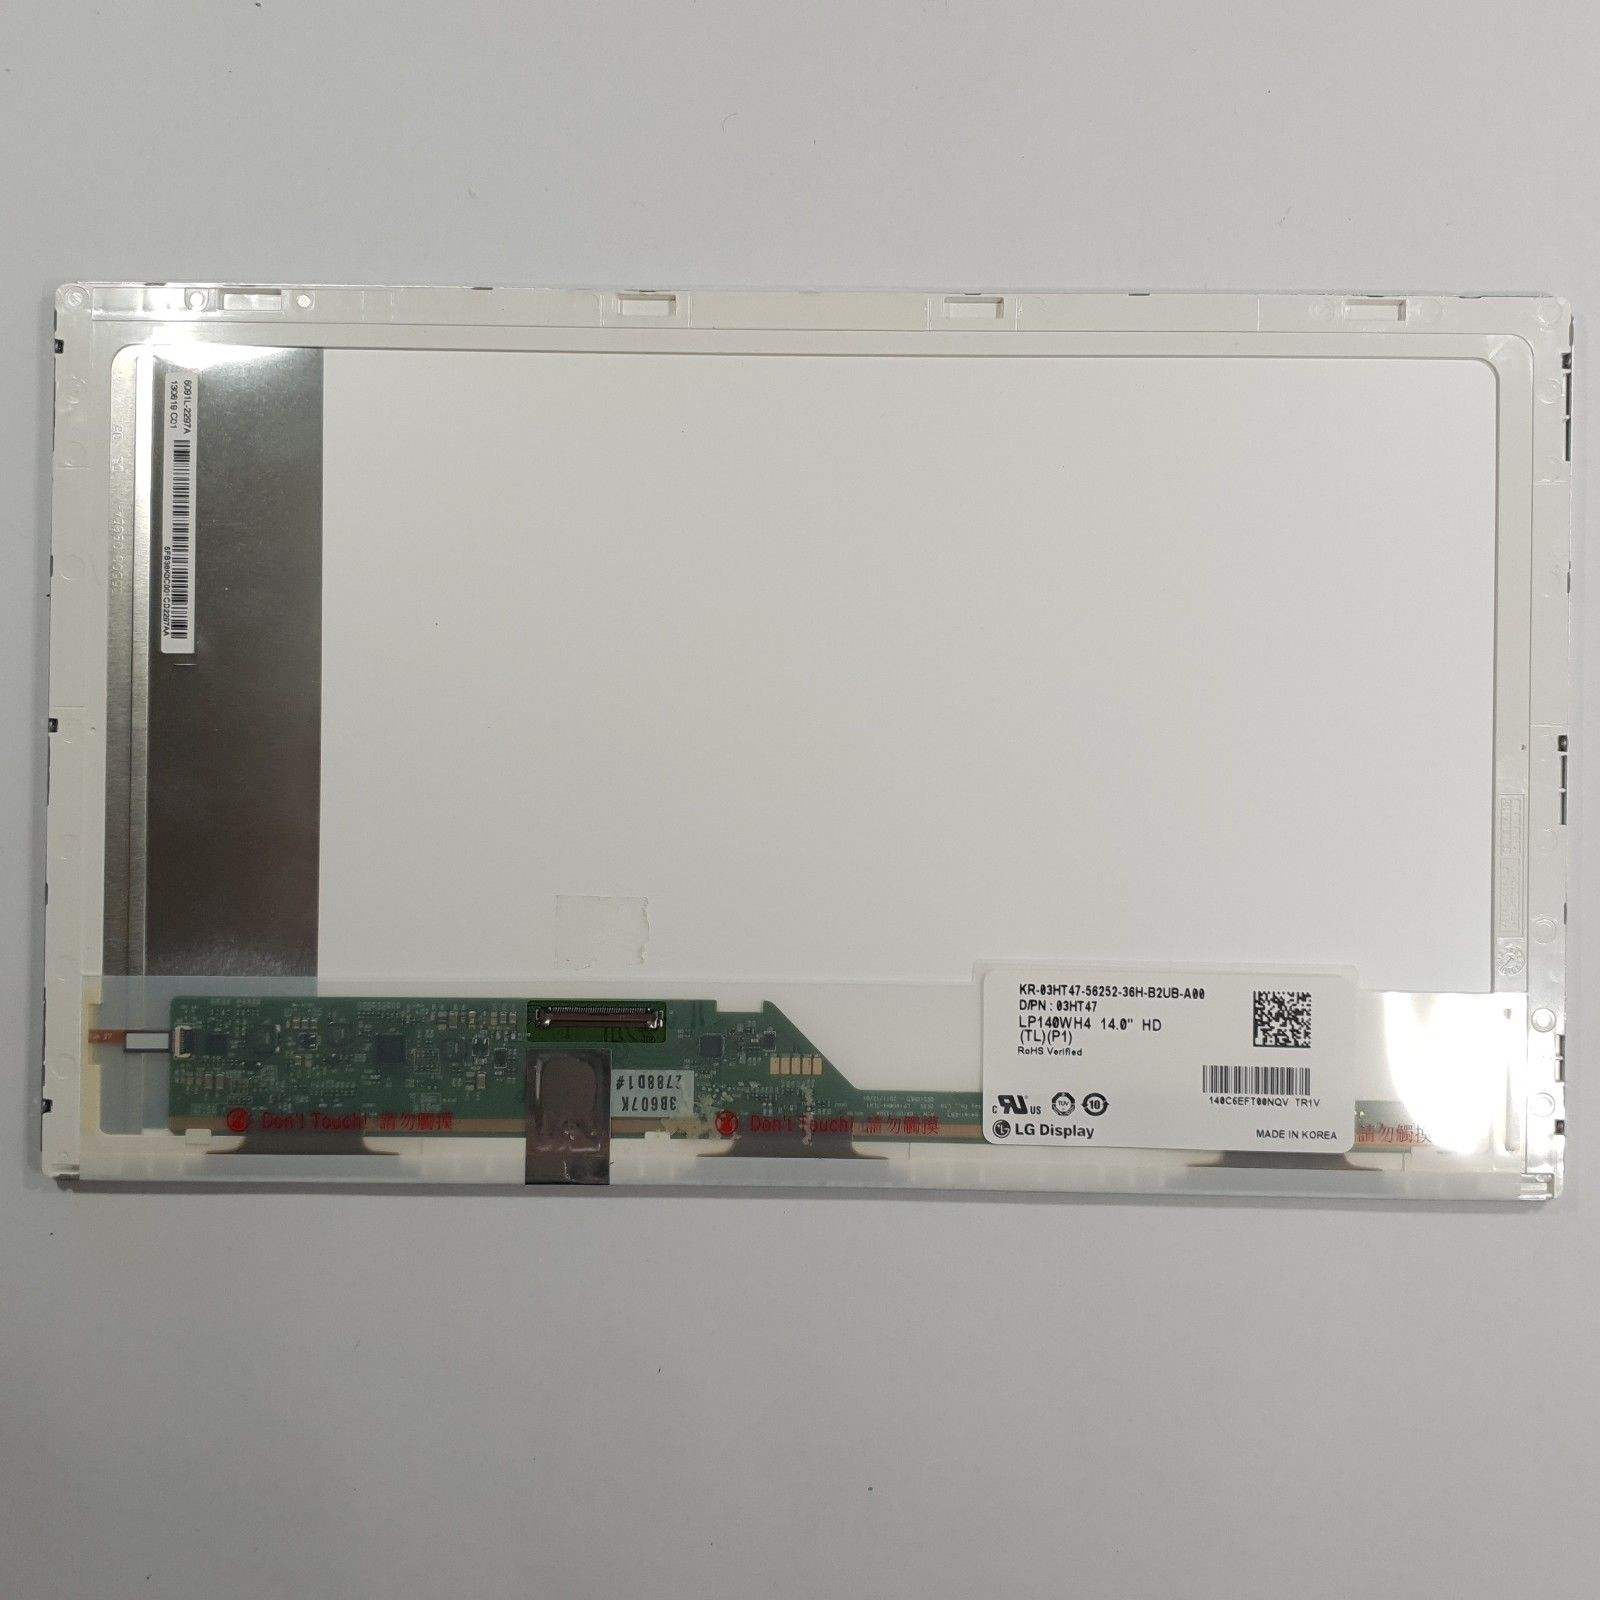 Dell Latitude E6220 Replacement LAPTOP LCD Screen 12.5 WXGA HD LED SINGLE Substitute Only. Not a LTN125AT01